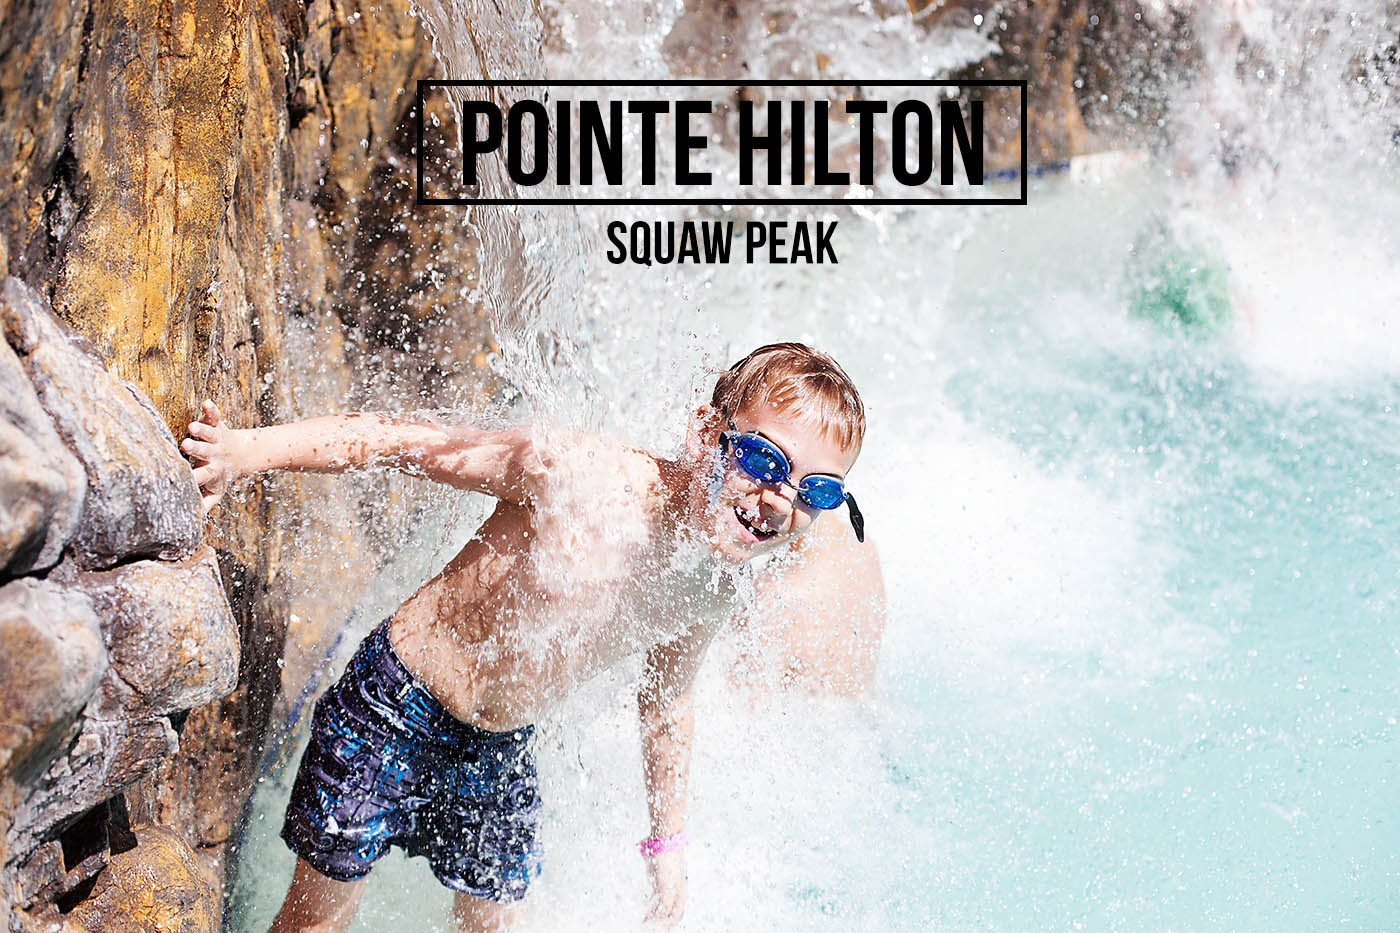 Pointe Hilton Squaw Peak